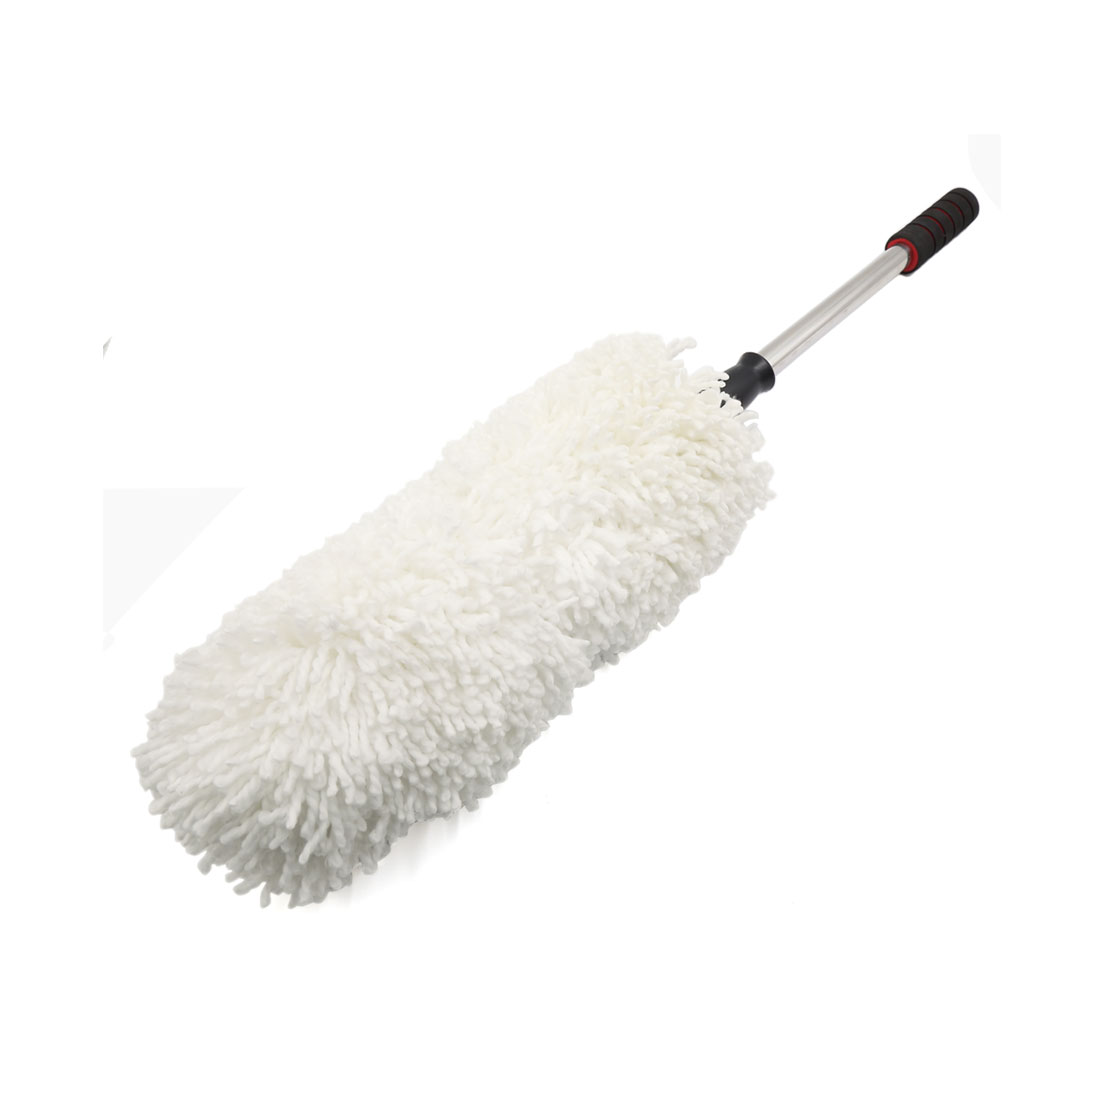 Home Car White Microfiber Telescoping Duster Extendable Cleaning Dust Tool